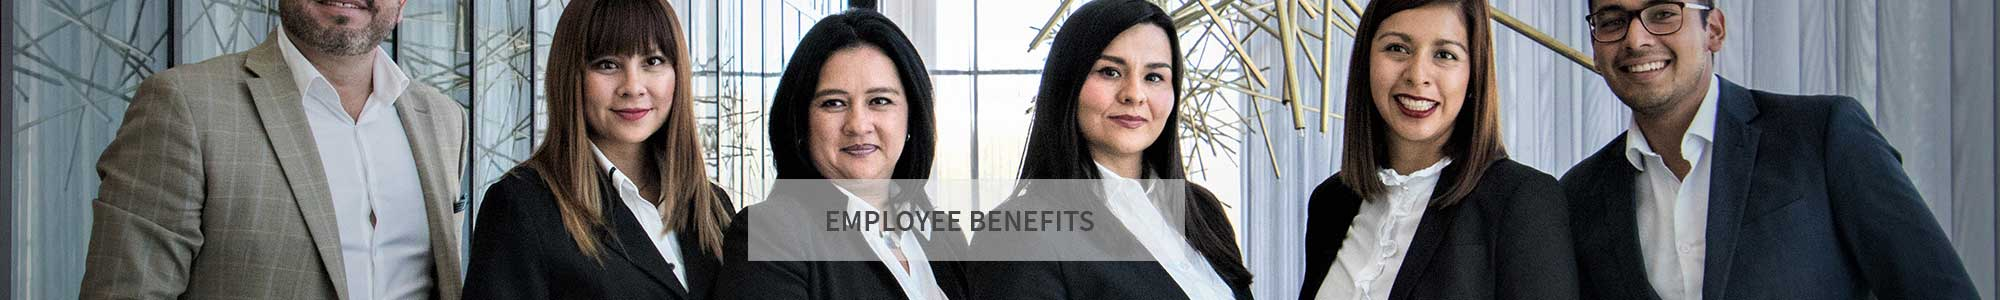 Lytle Associates Group Employee Benefits